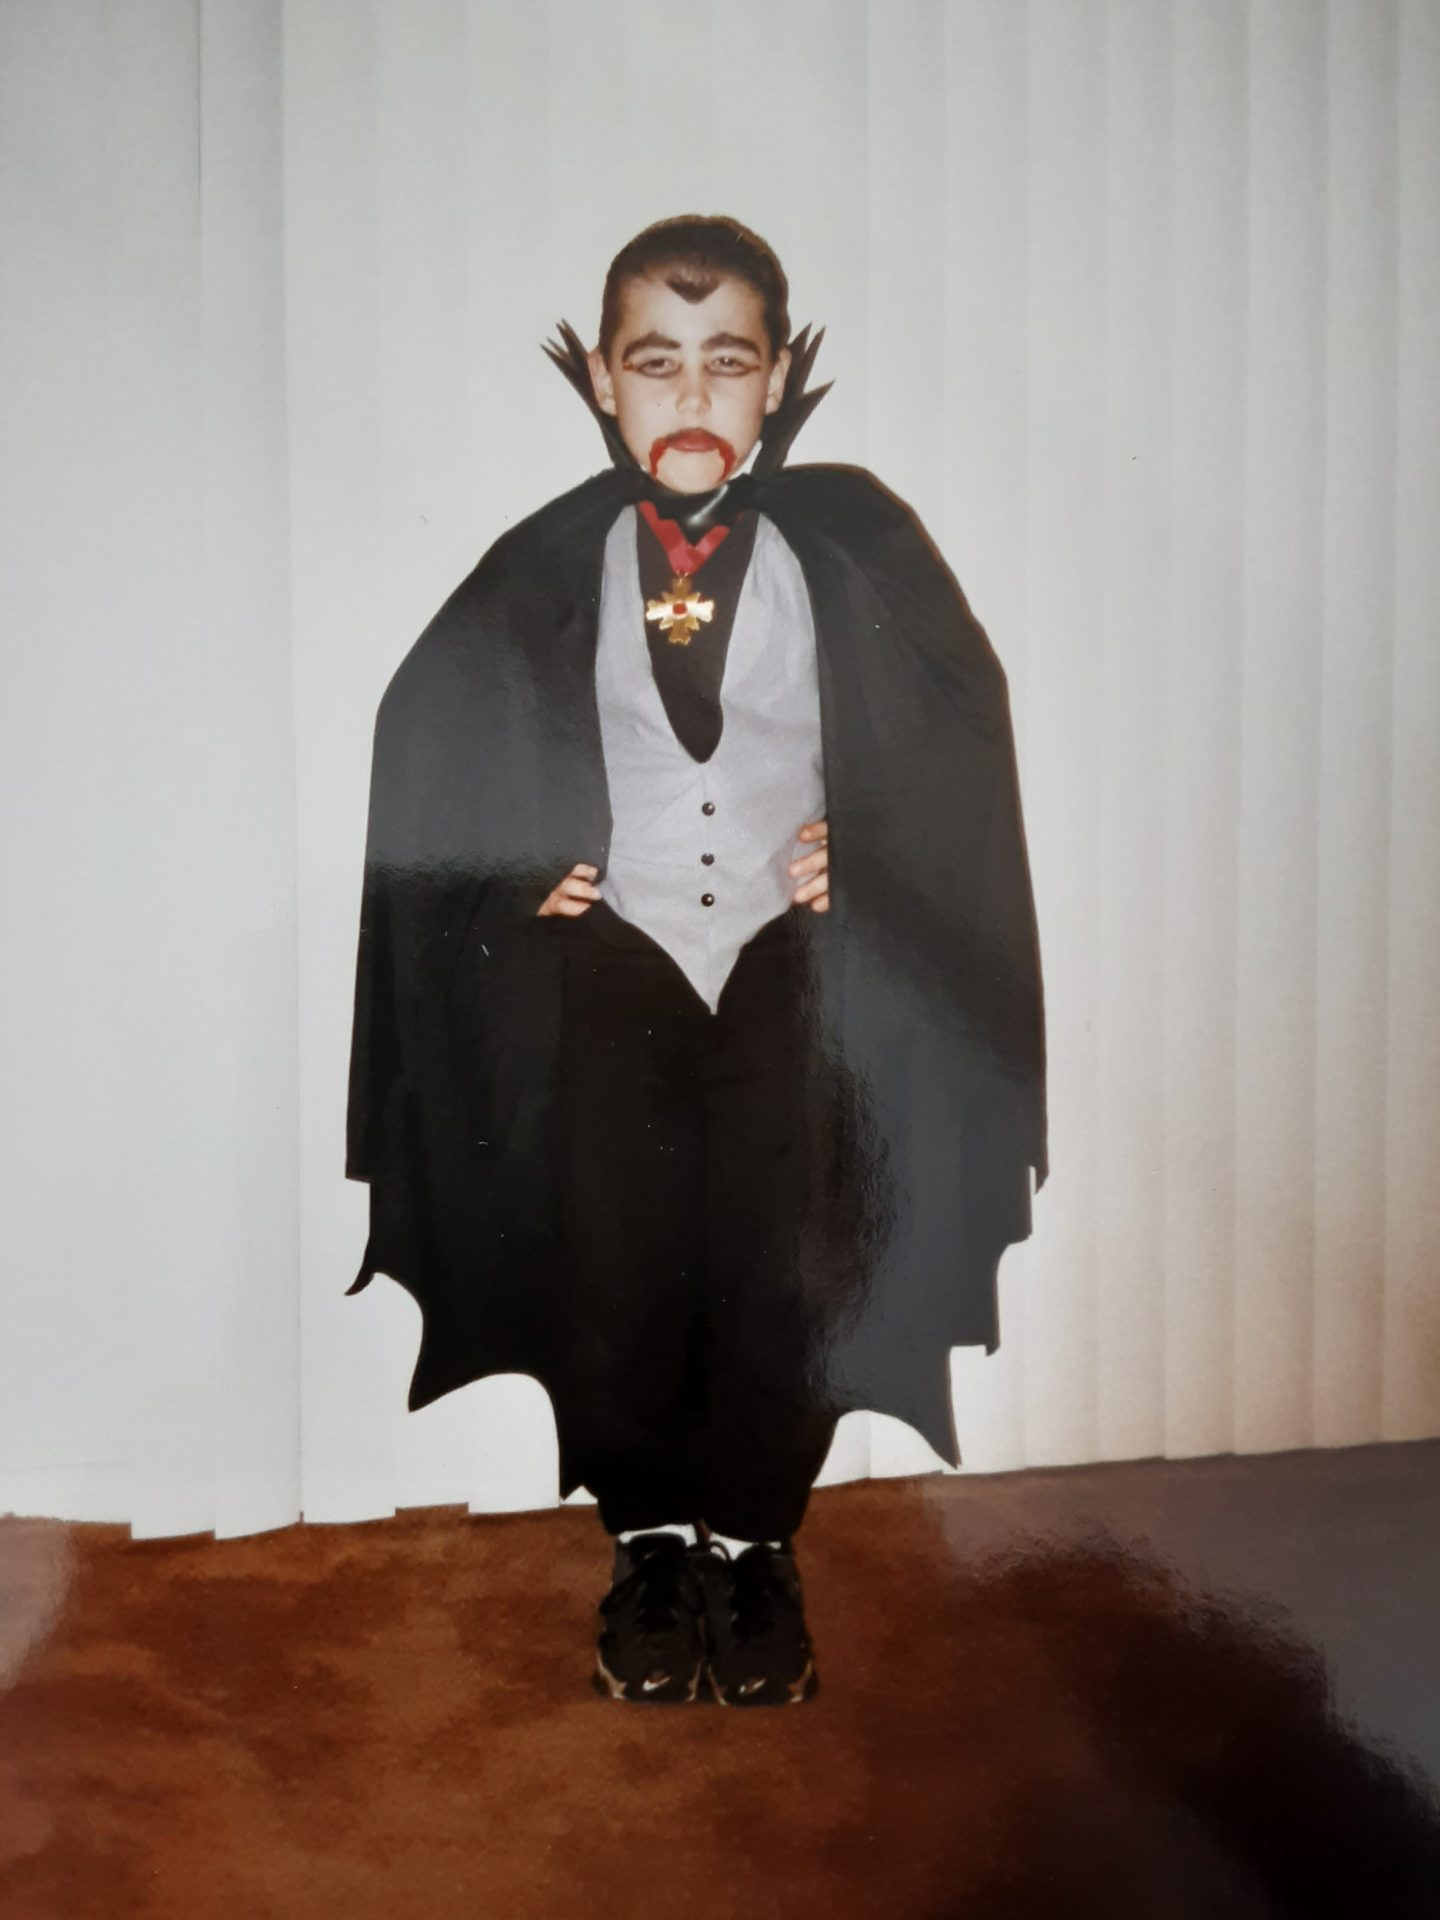 Anthony looked forward to getting dressed up on Halloween to go trick or treating.  Also he enjoyed going to haunted houses.  He had fun scaring people just to see them jump and laugh!<br /> I Miss and Love You....